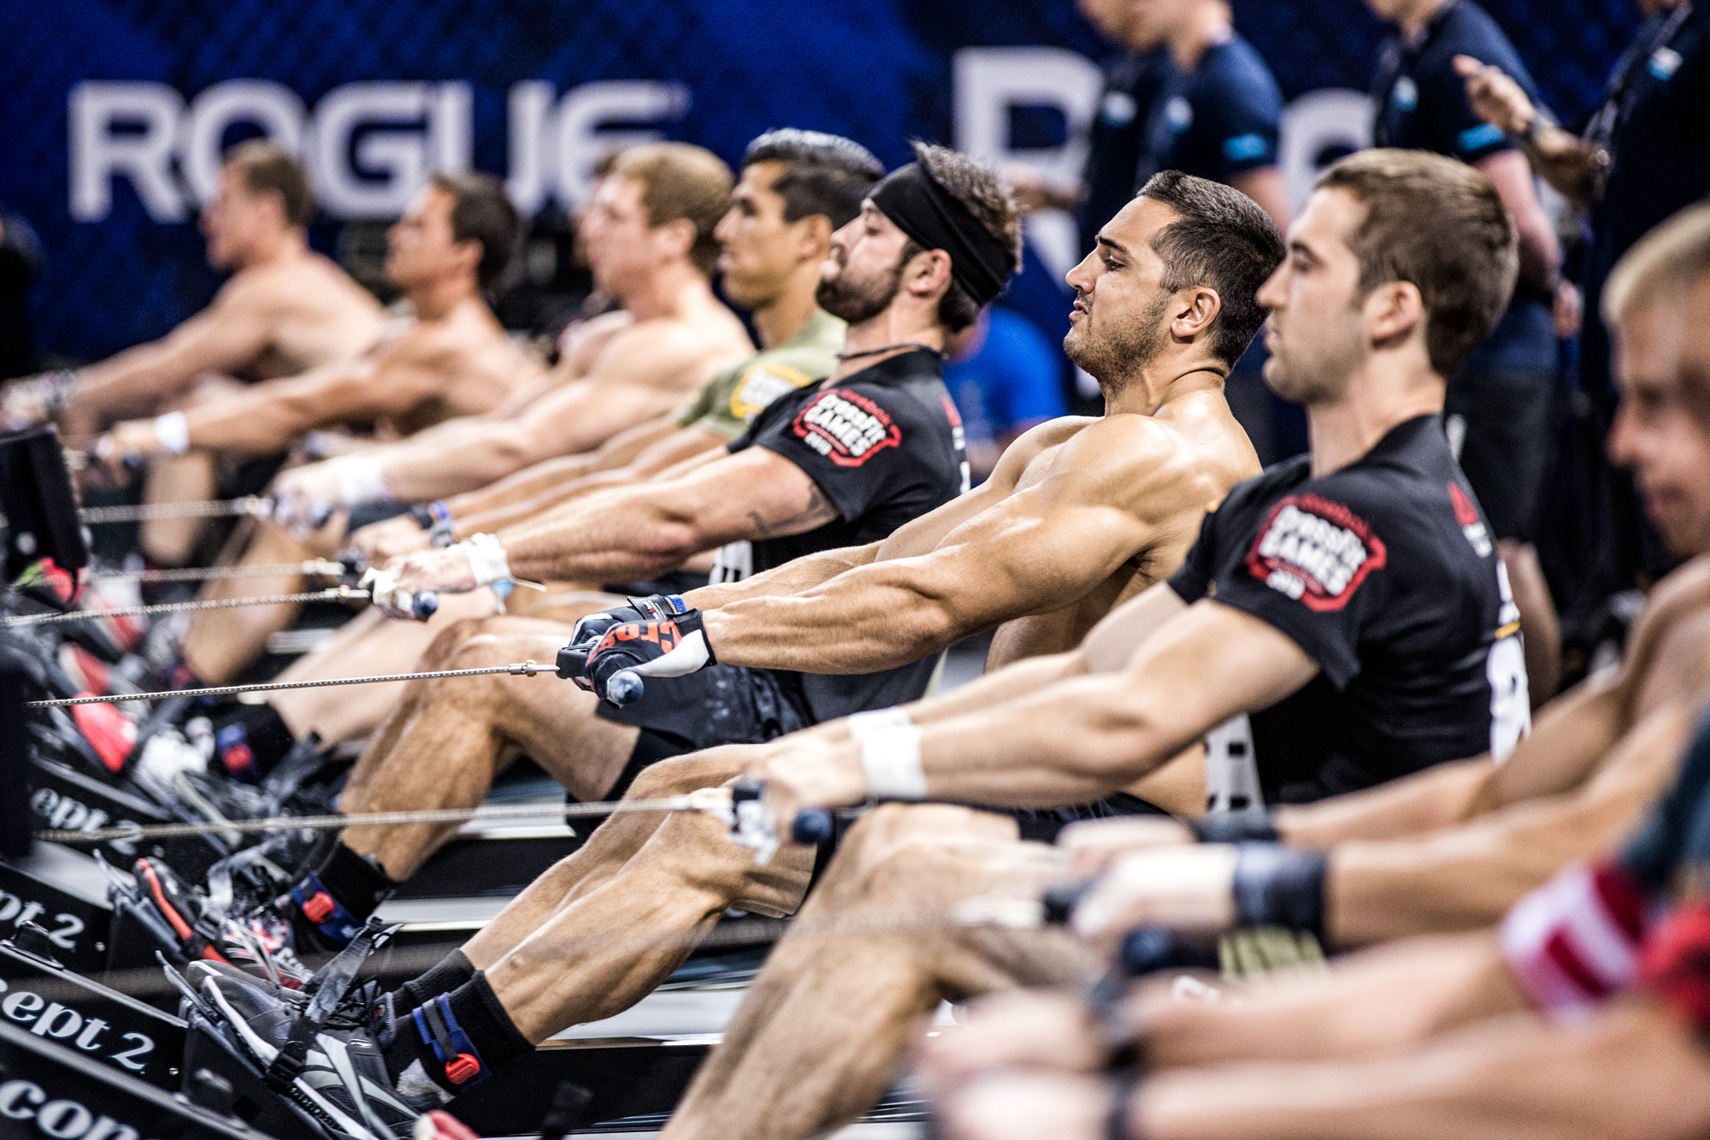 Los Angeles Sports Photography, Michael Brian, athlete, Crossfit, Rich Froning, Jason Khalipa, Ben Smith, Scott Panchik, Josh Bridges, Marcus Hendren, Garret Fisher, rowing, Fittest Man on Earth, Reebok Crossfit Games athletes , Crossfit Games Champion, R